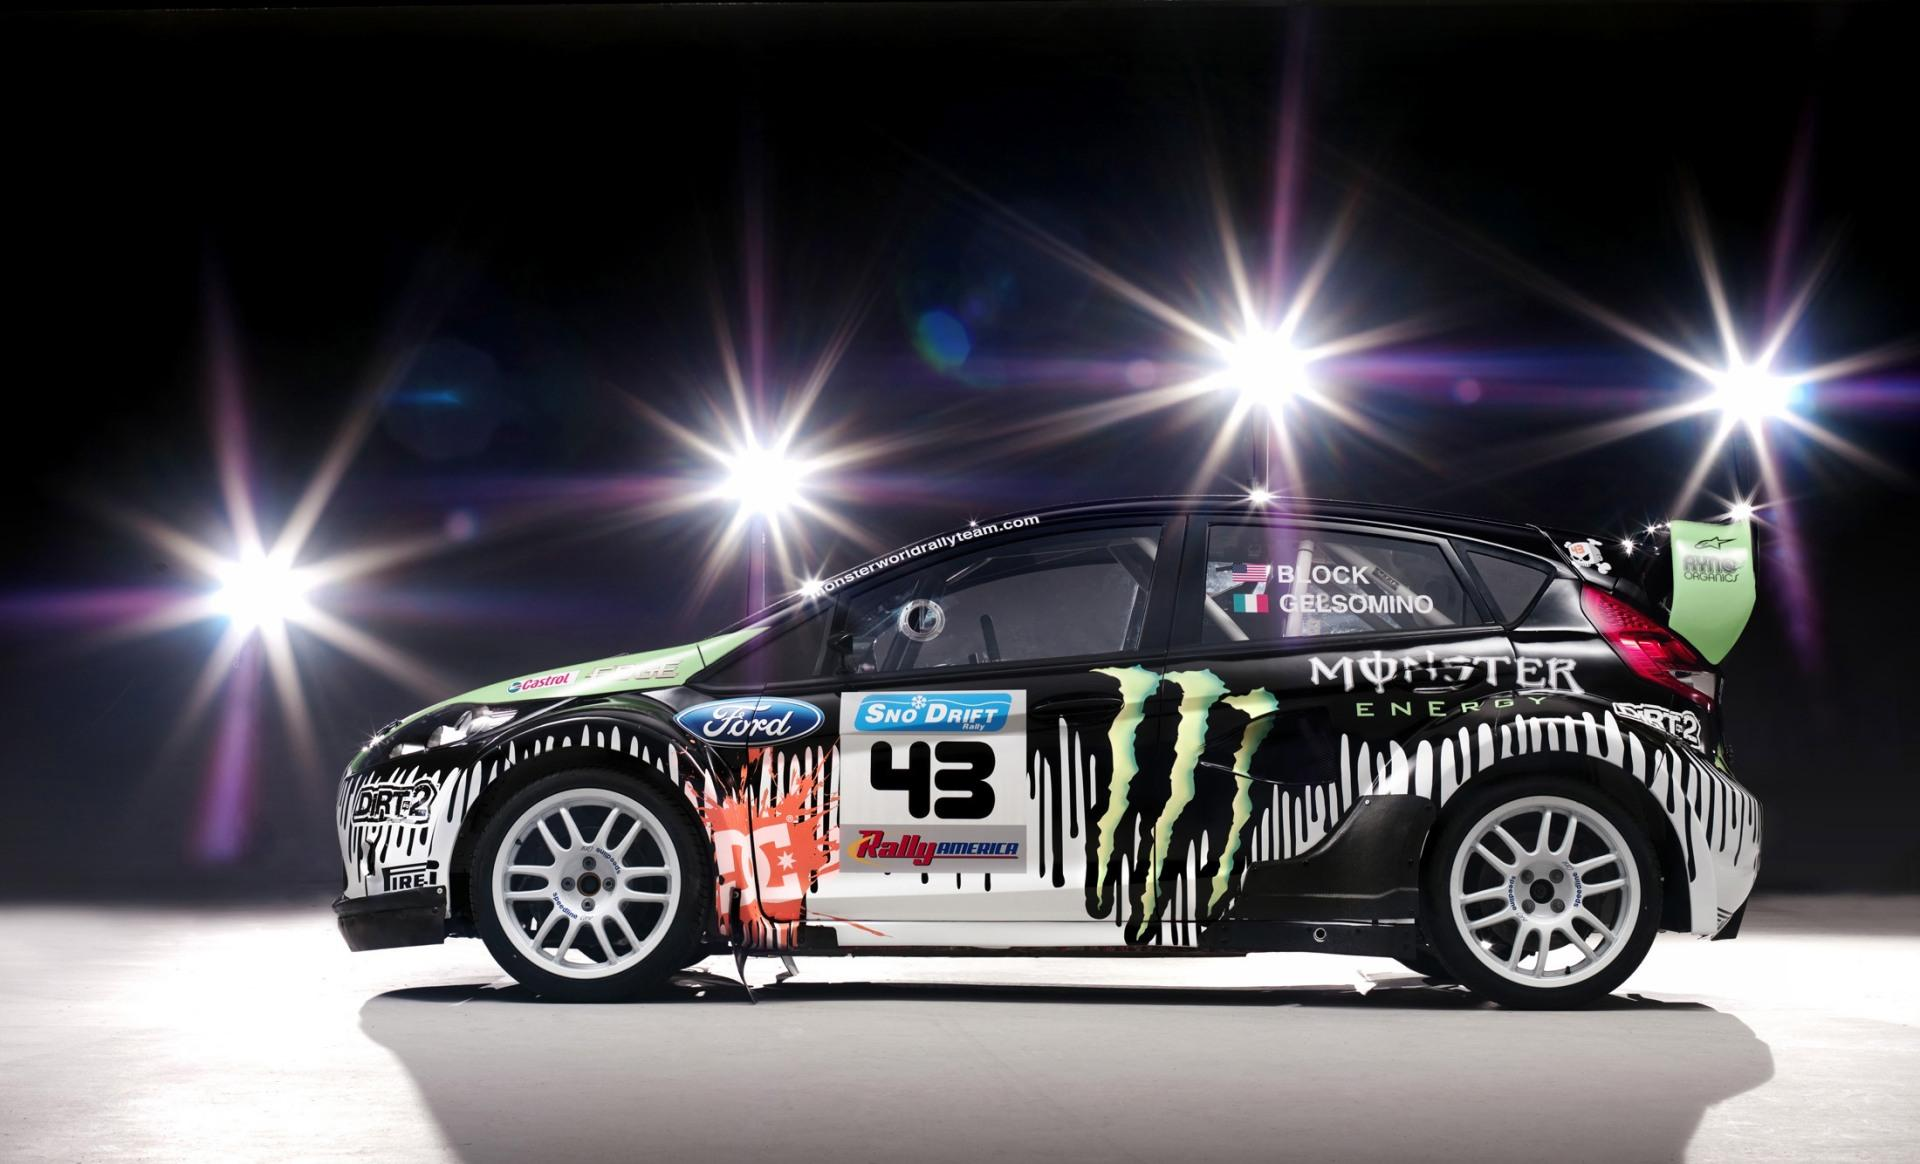 2010 Ford Fiesta Monster World Rally News and Information, Research ...